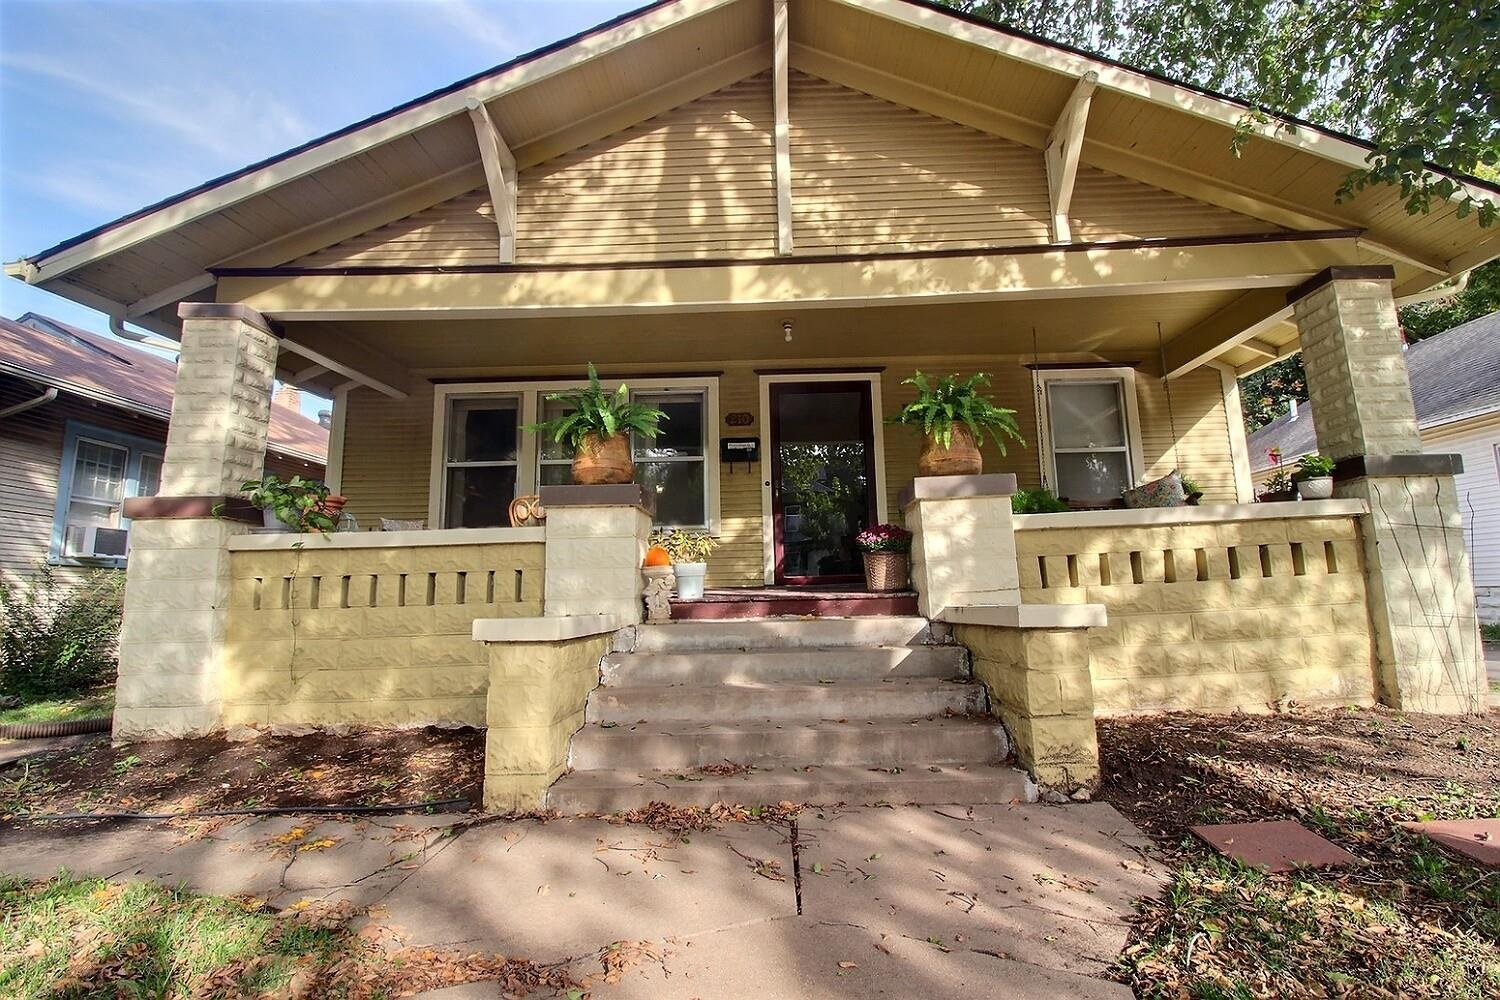 Well maintained Bungalow in the heart of Wichita. 2 large bedrooms on main floor, also 2 small bedro